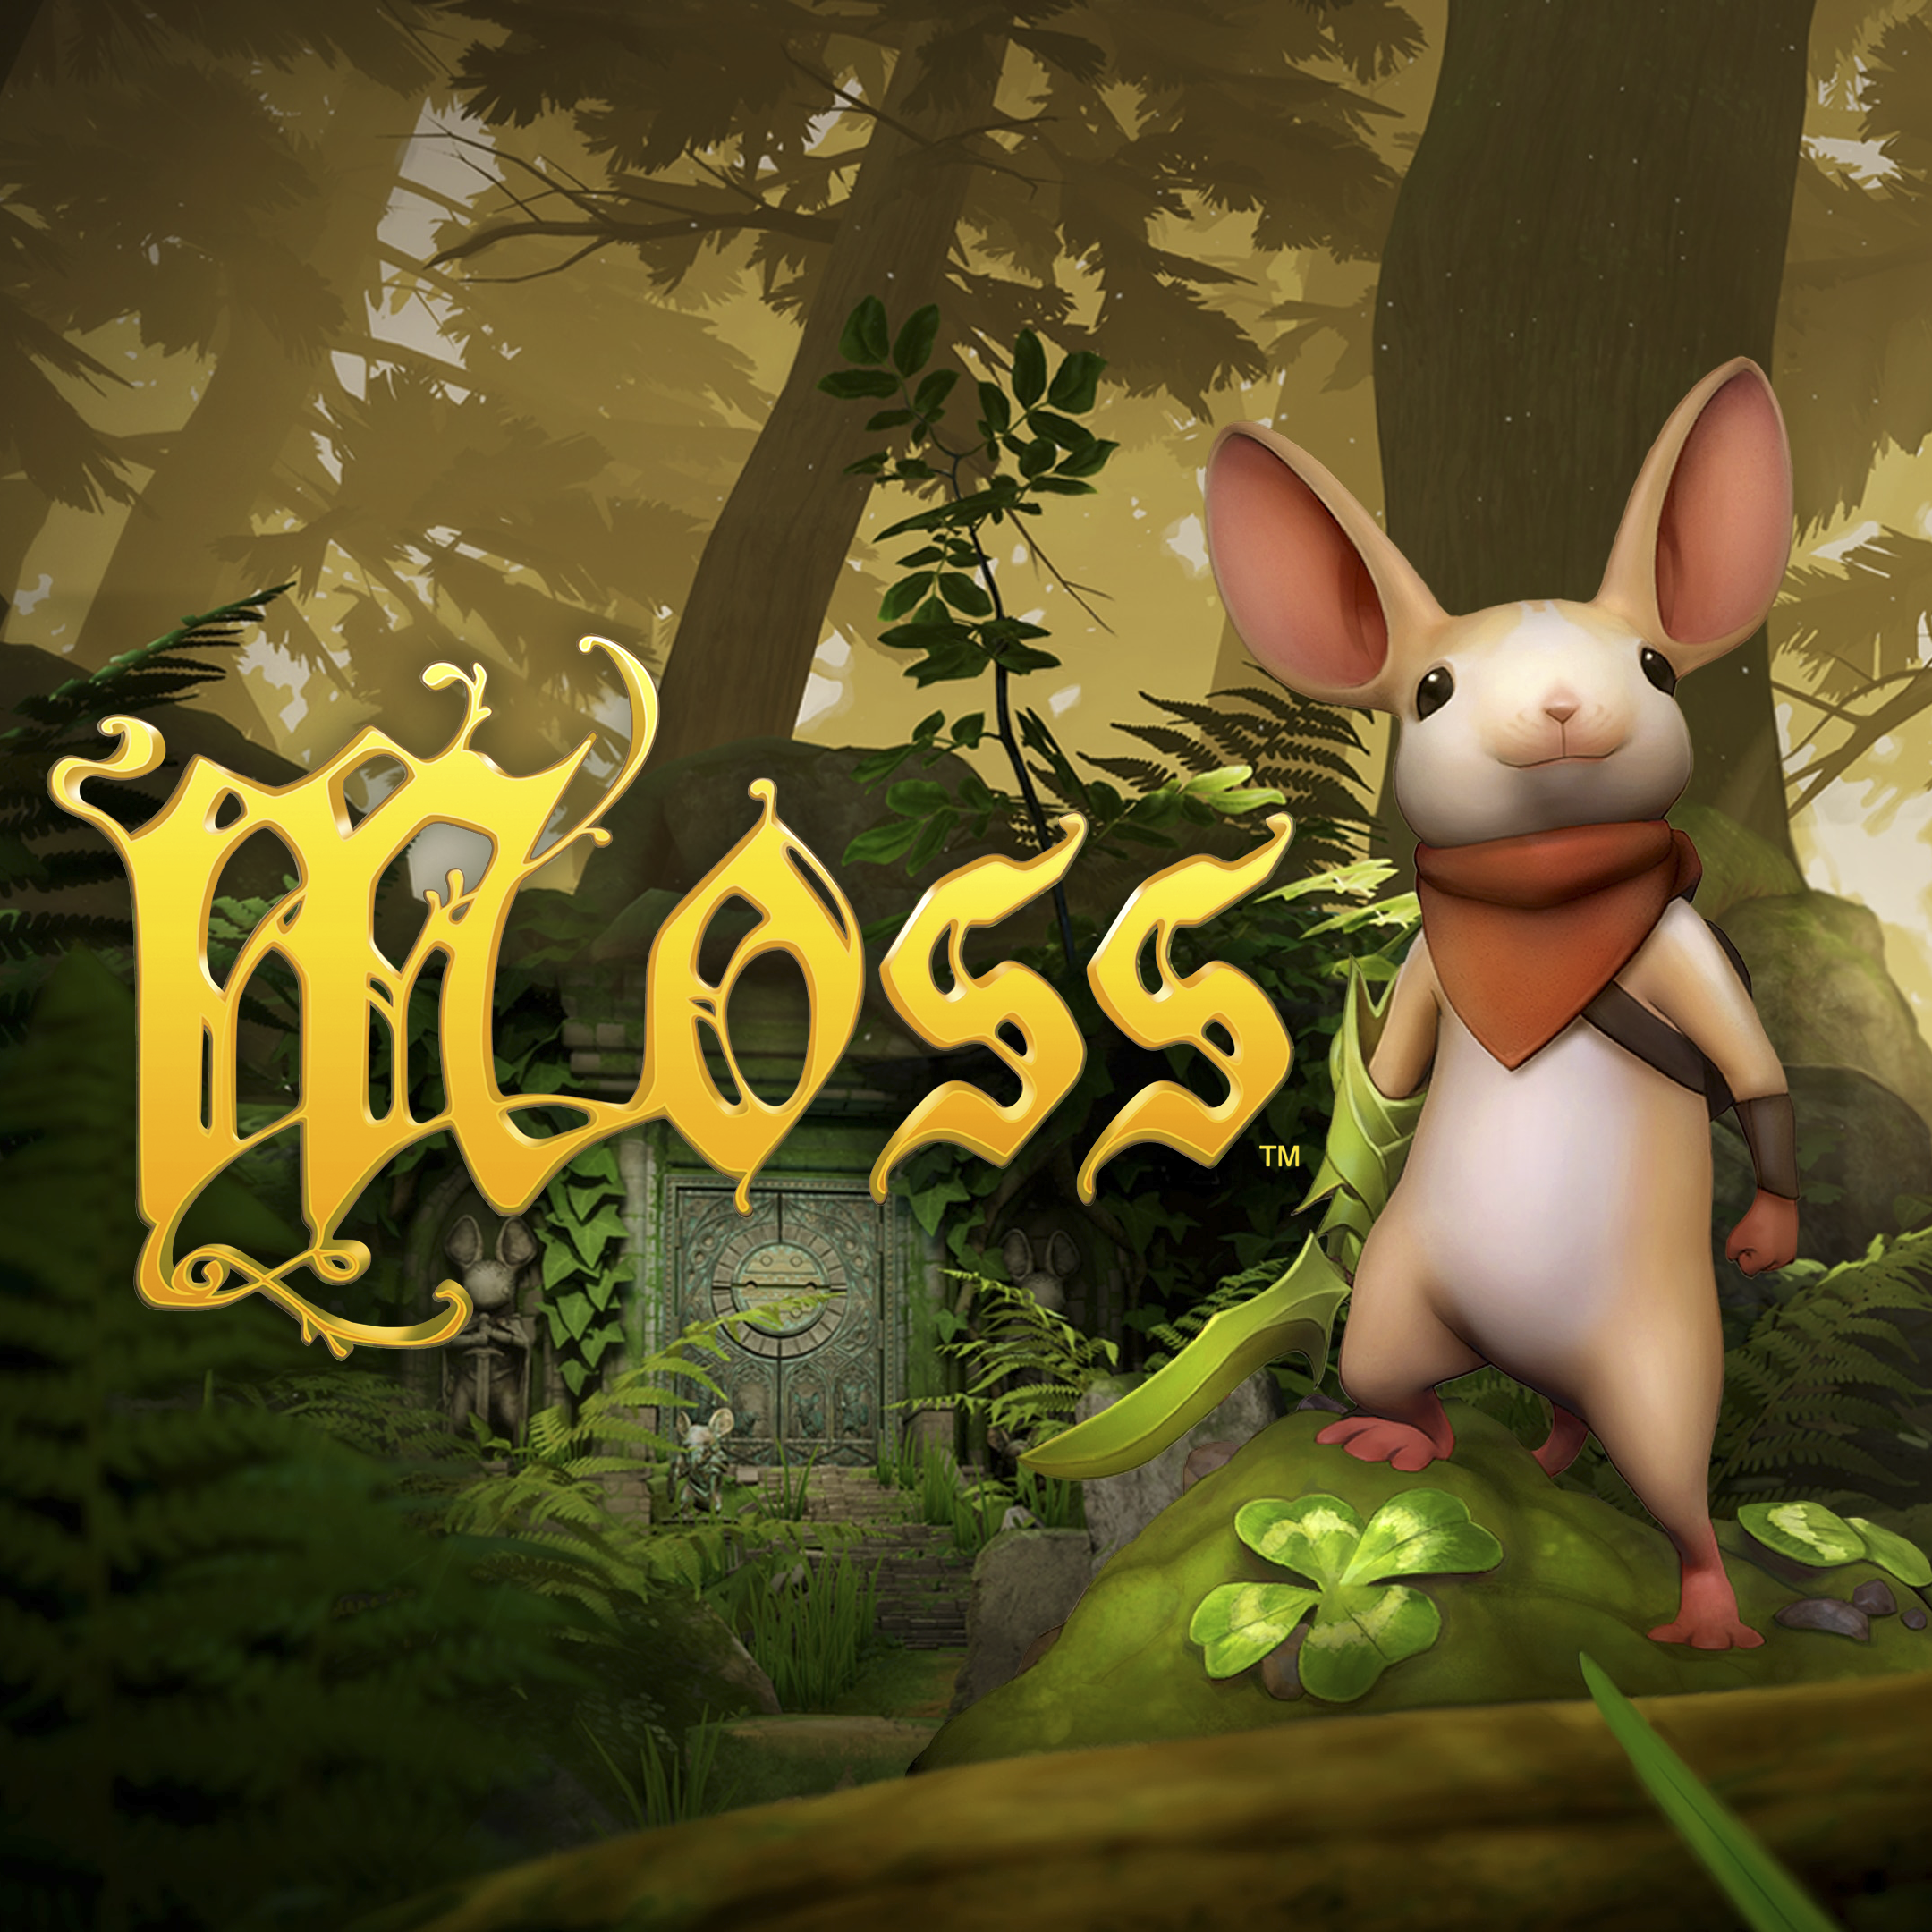 Moss gratuito con Play at Home